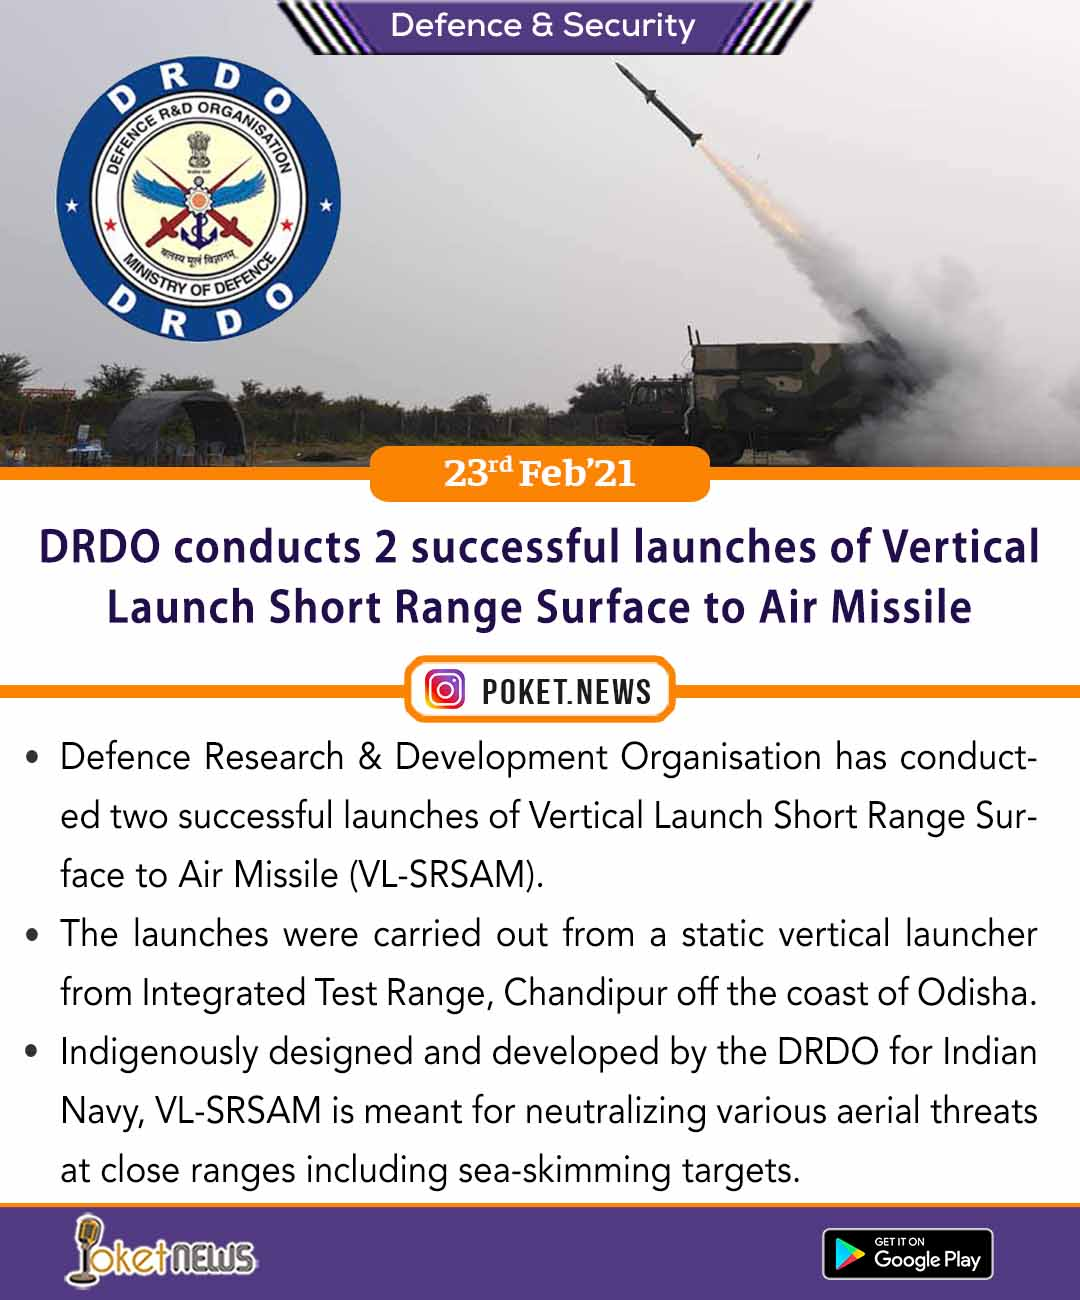 DRDO conducts 2 successful launches of Vertical Launch Short Range Surface to Air Missile